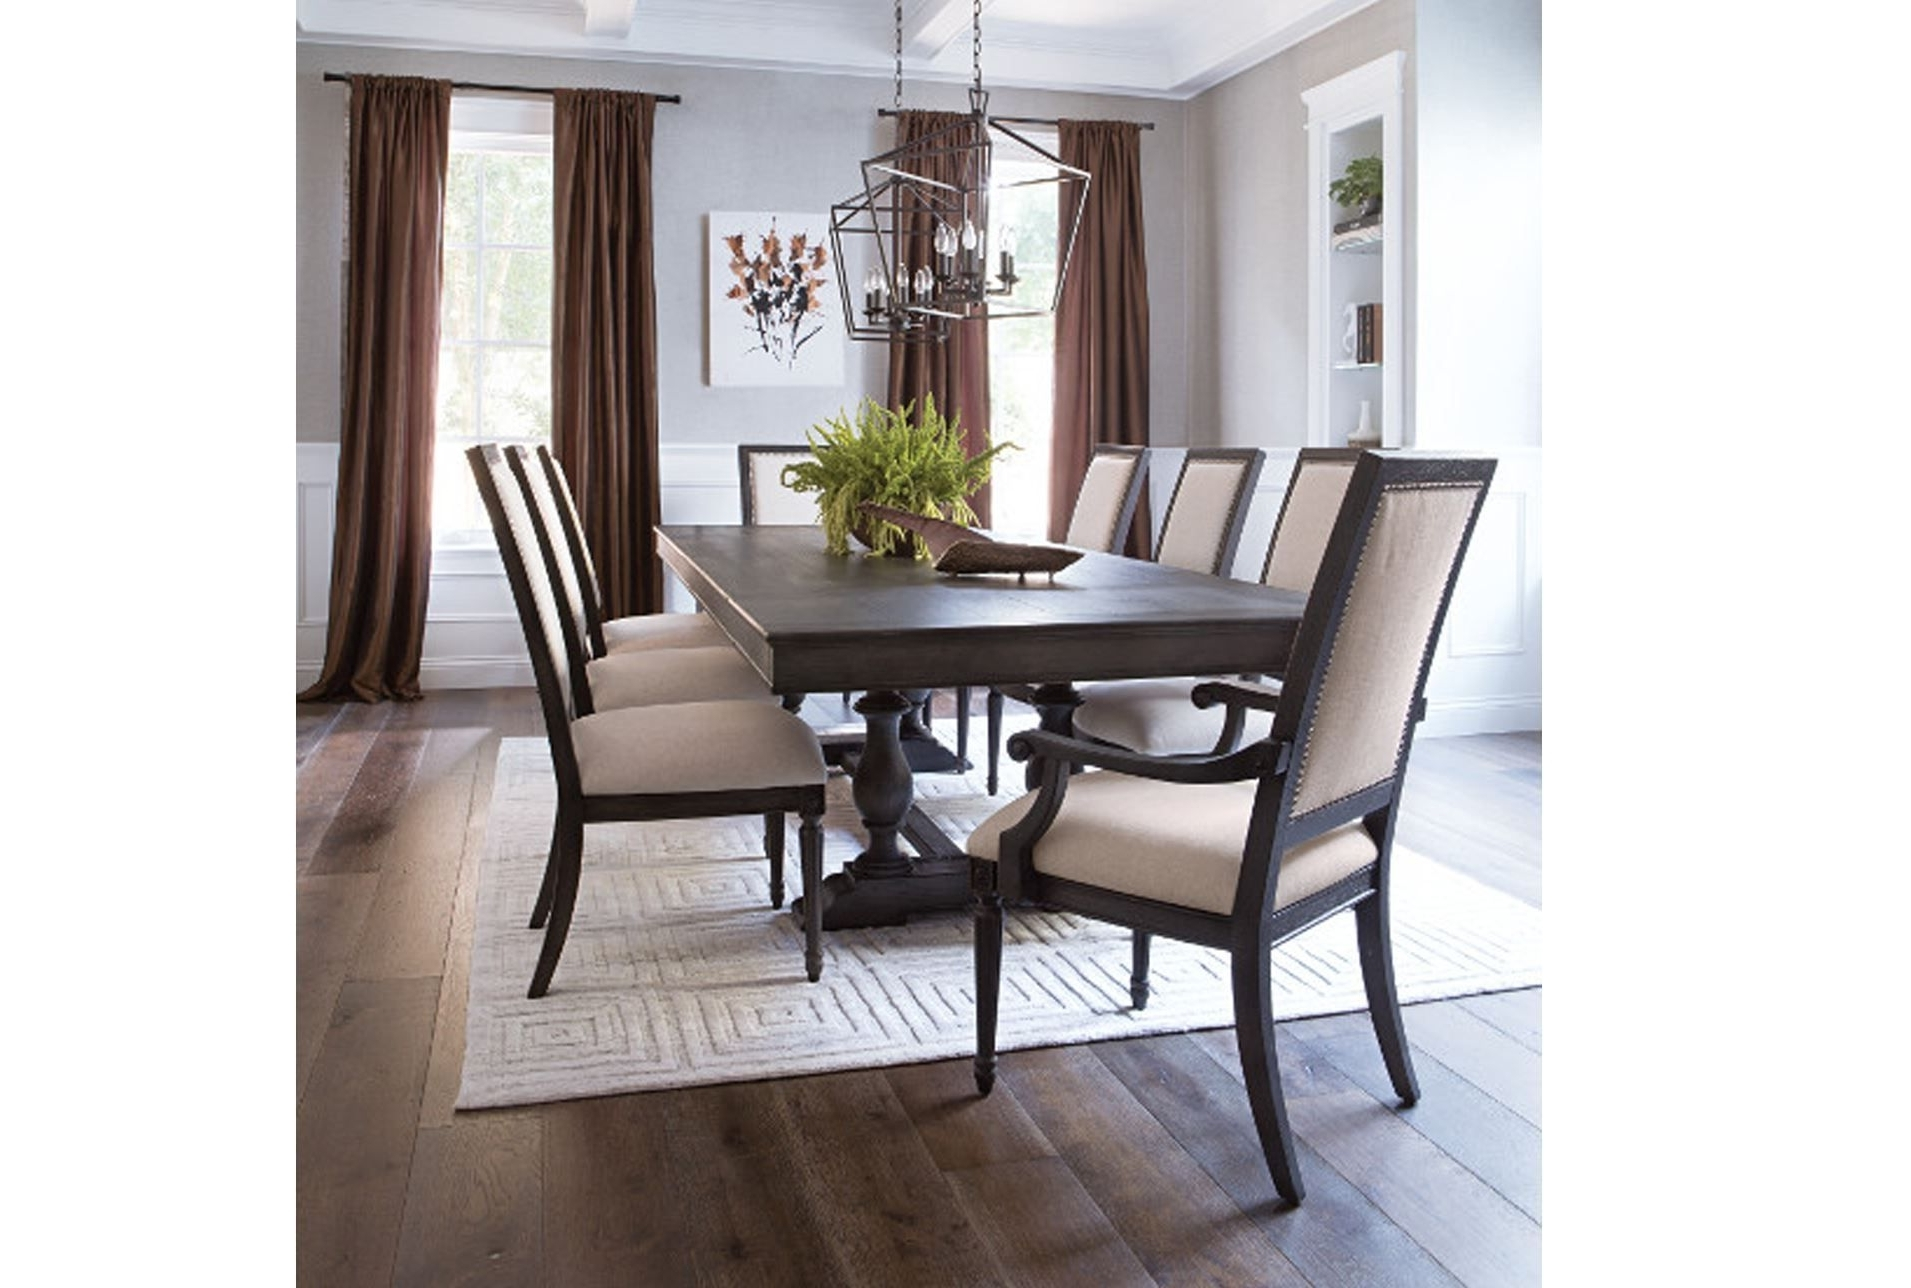 Widely Used Chapleau Extension Dining Tables Intended For Chapleau 9 Piece Extension Dining Set, Off White (View 3 of 25)